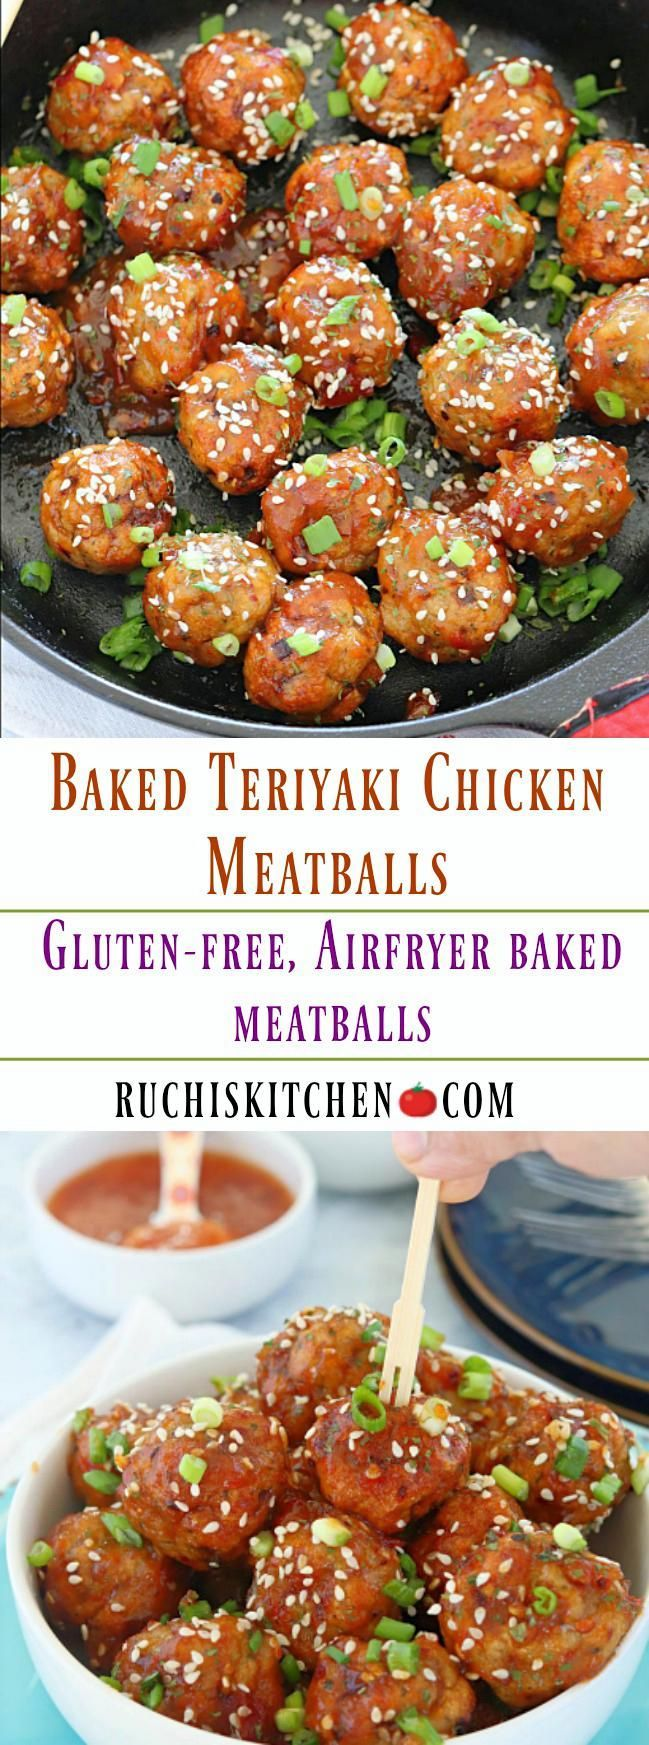 Gluten-free, air fryer Baked Chicken Meatballssmothered in a spicy teriyaki sauce is anultimate game day appetizer. So easy-to-make andan absolute crowd pleaser recipe! #gameday #appetizer #chickenmeatballs #gamedaysnacks #meatballs #teriyakimeatballs